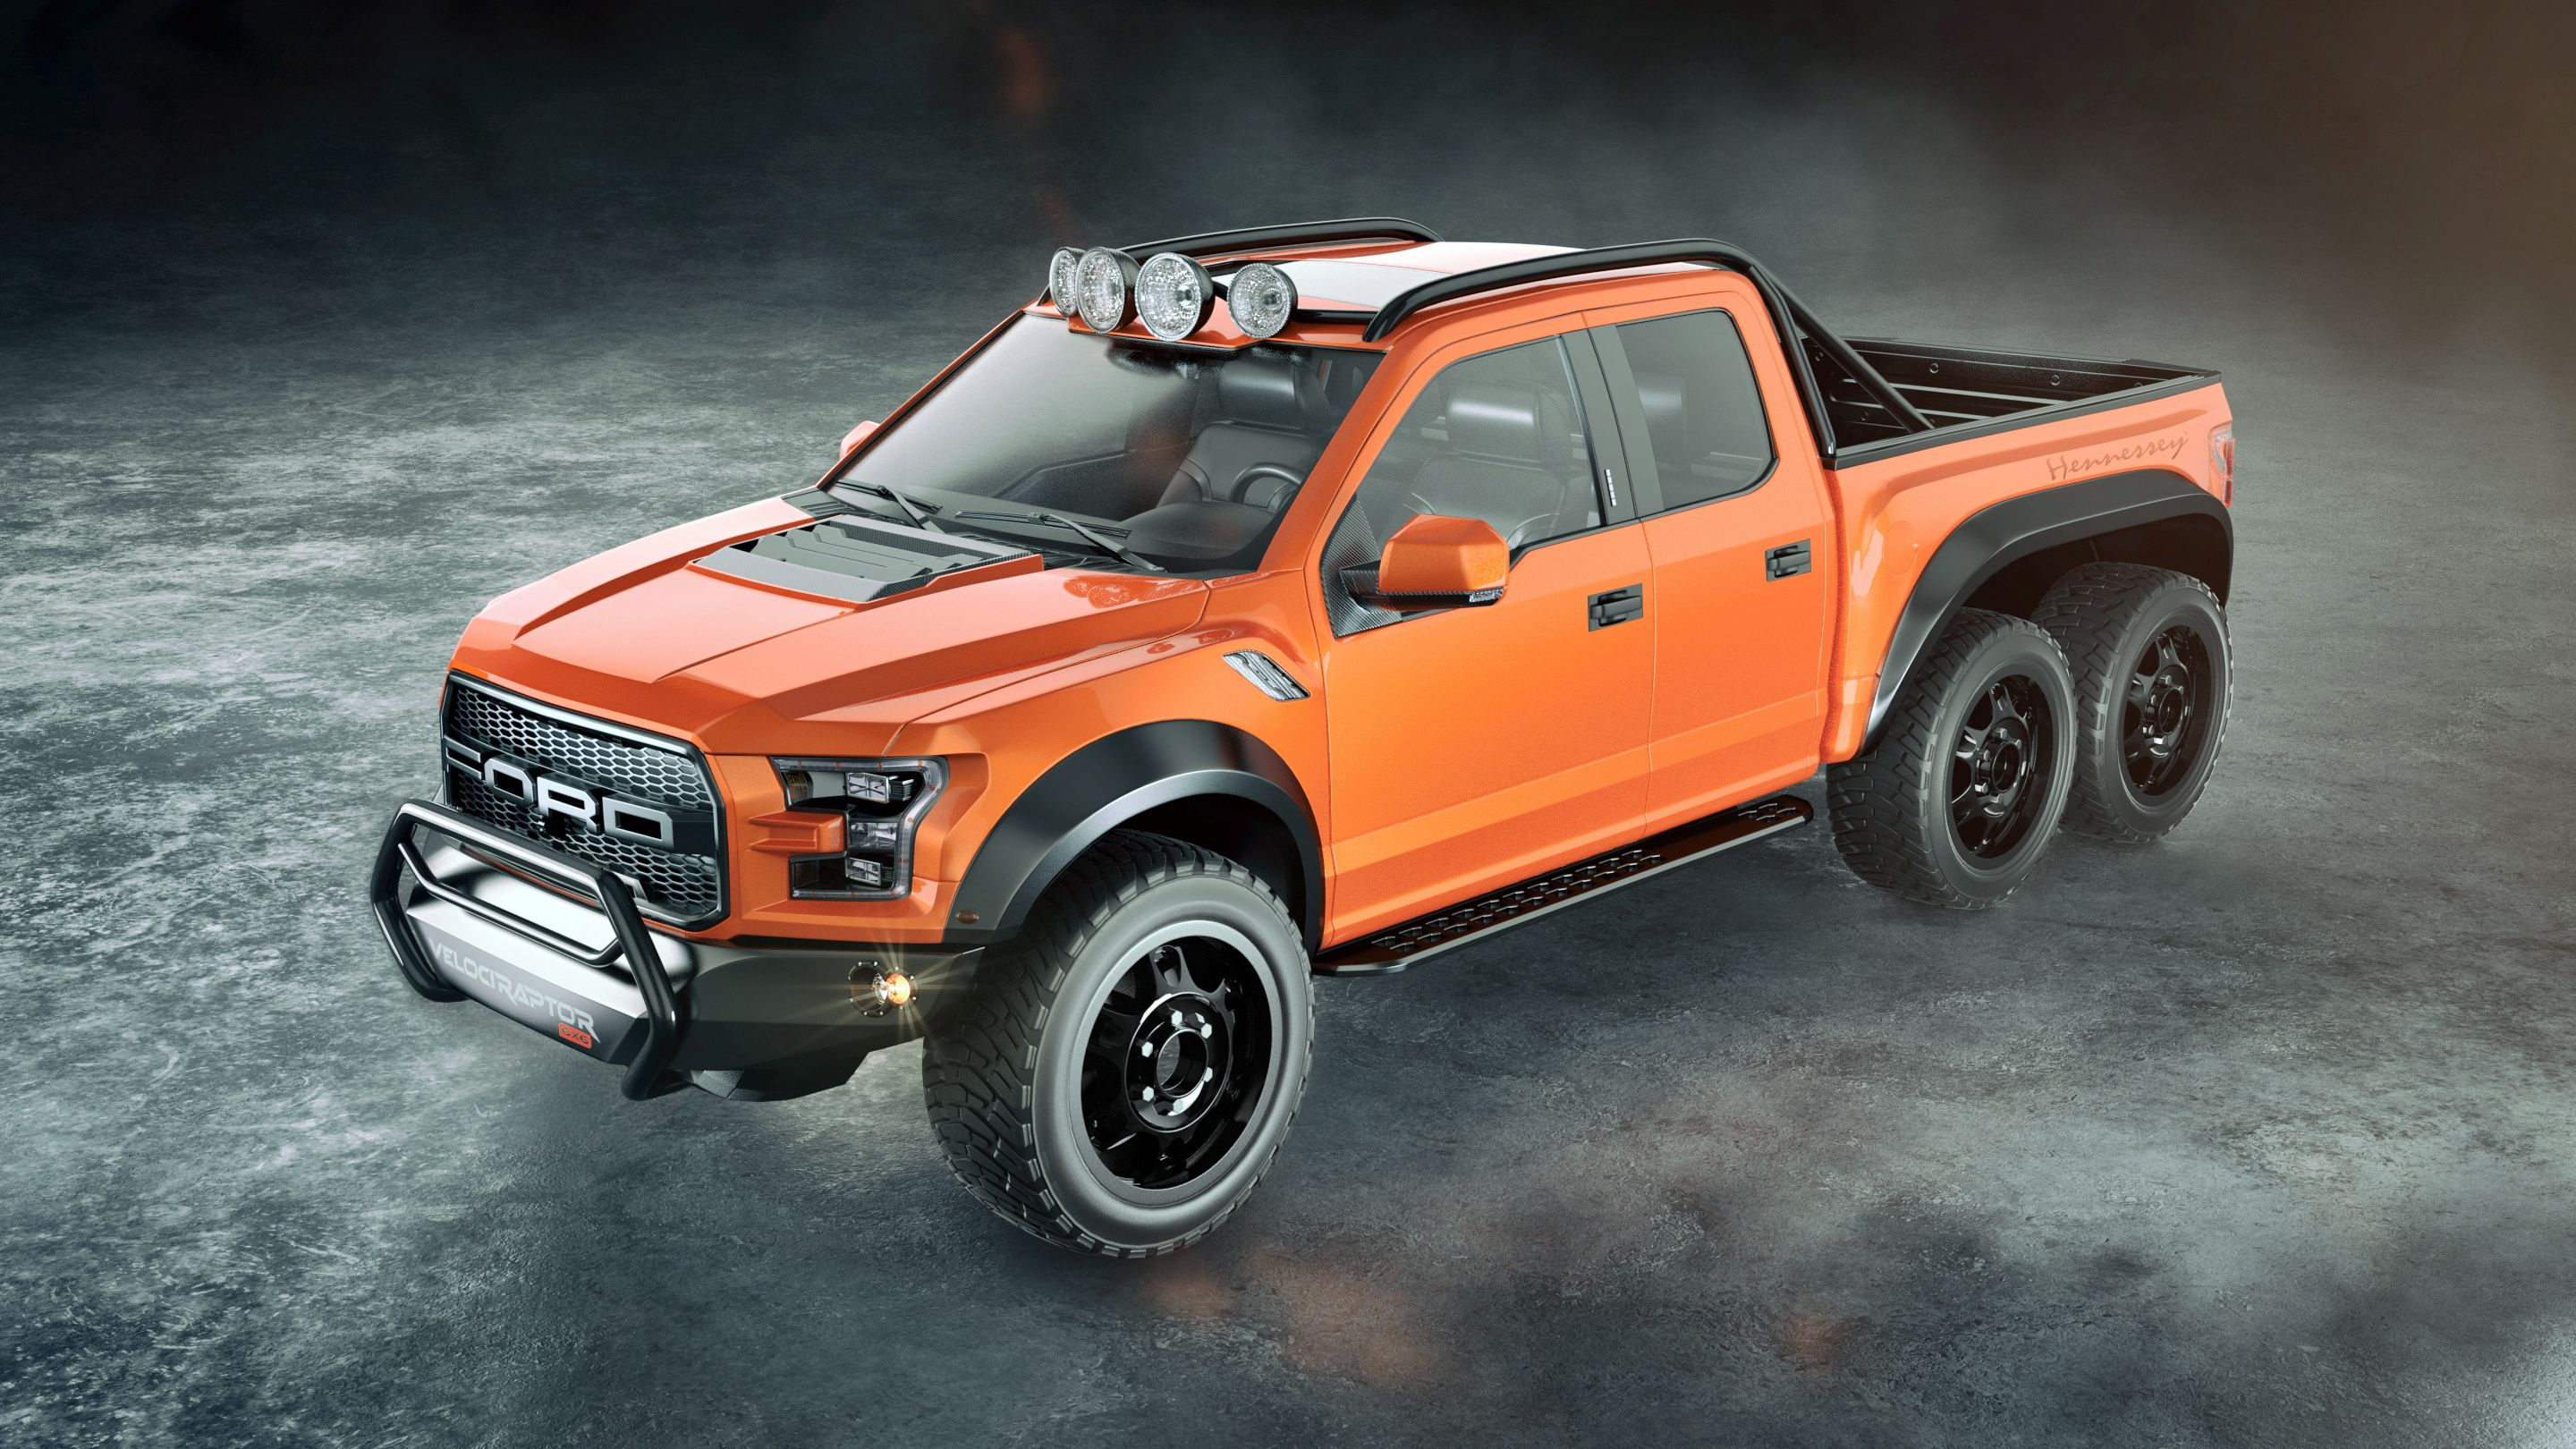 Hennessey Velociraptor 6x6 With Images Ford Raptor Ford